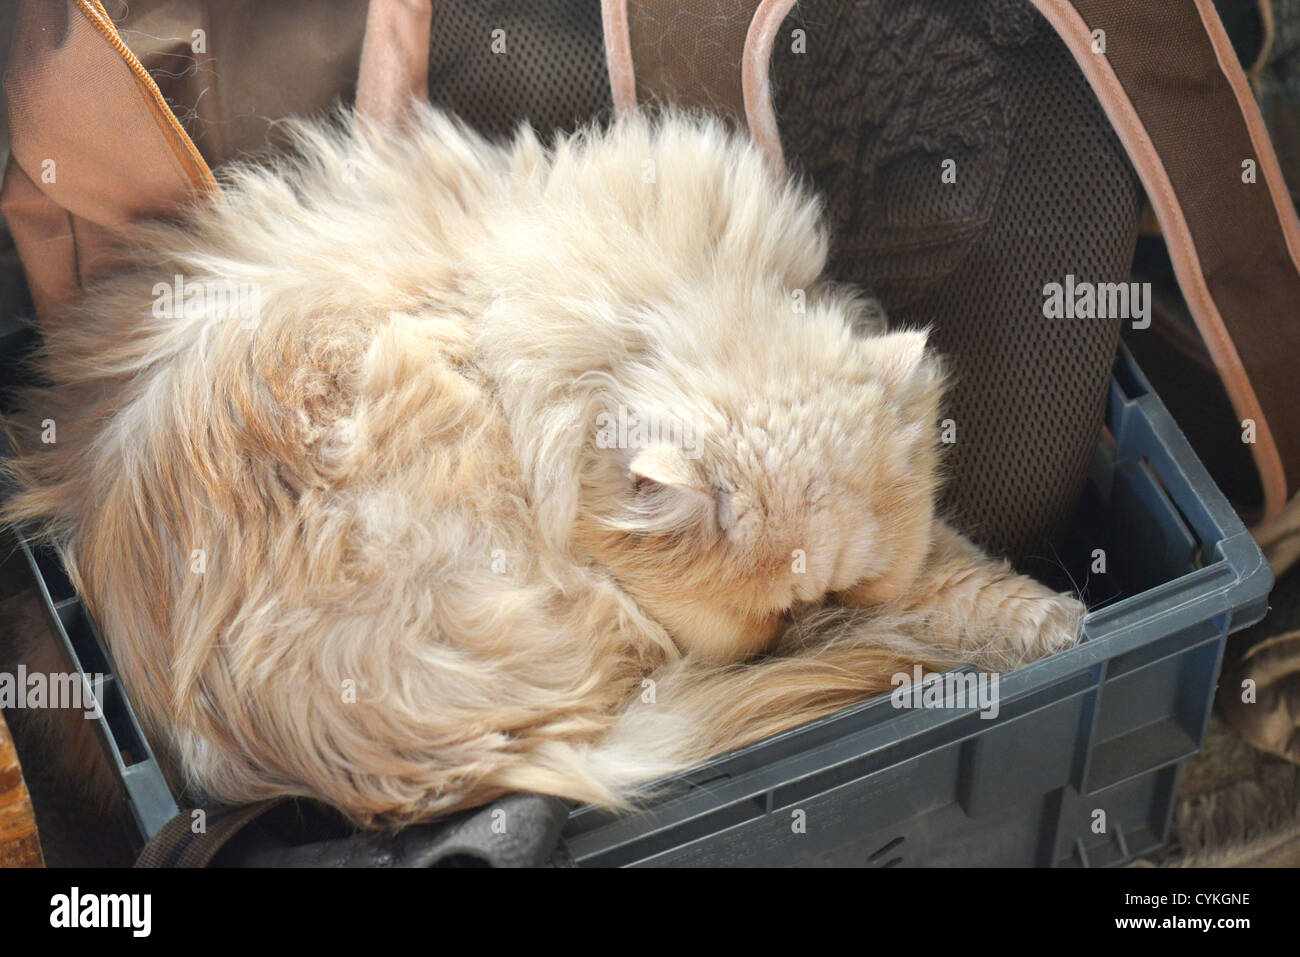 Cat sleeping in a plastic box in a tight fit - Stock Image